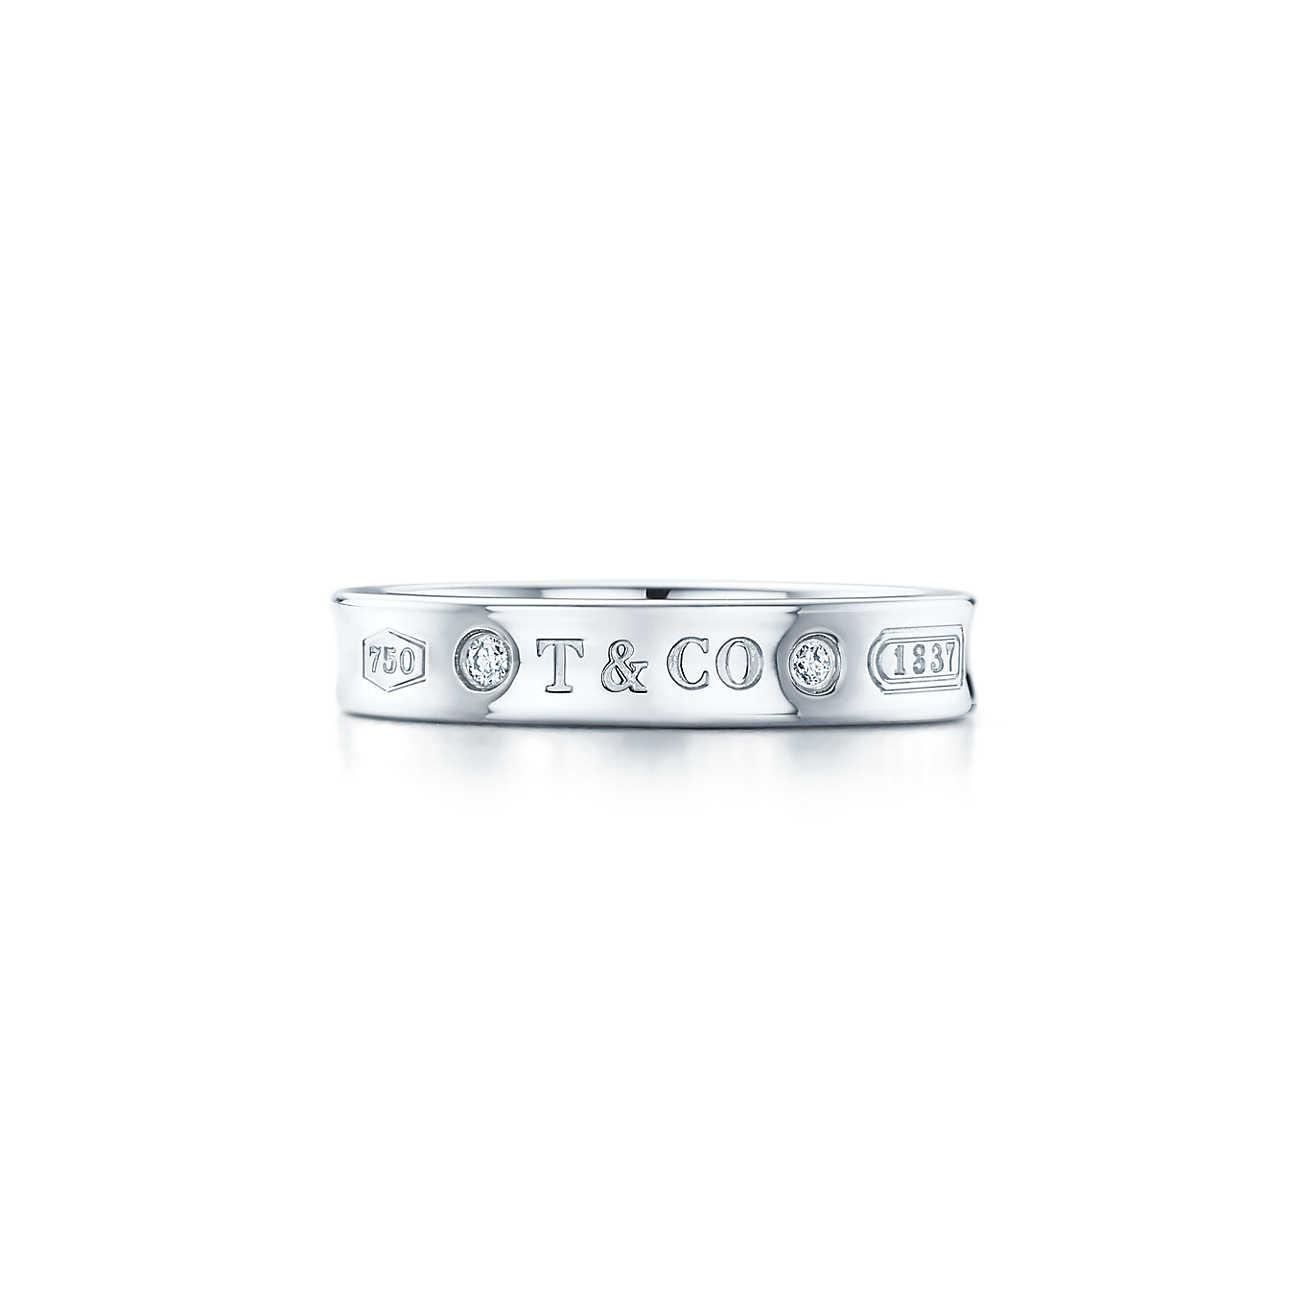 5a618e4f1 Tiffany & Co. Narrow Ring in White - Lyst